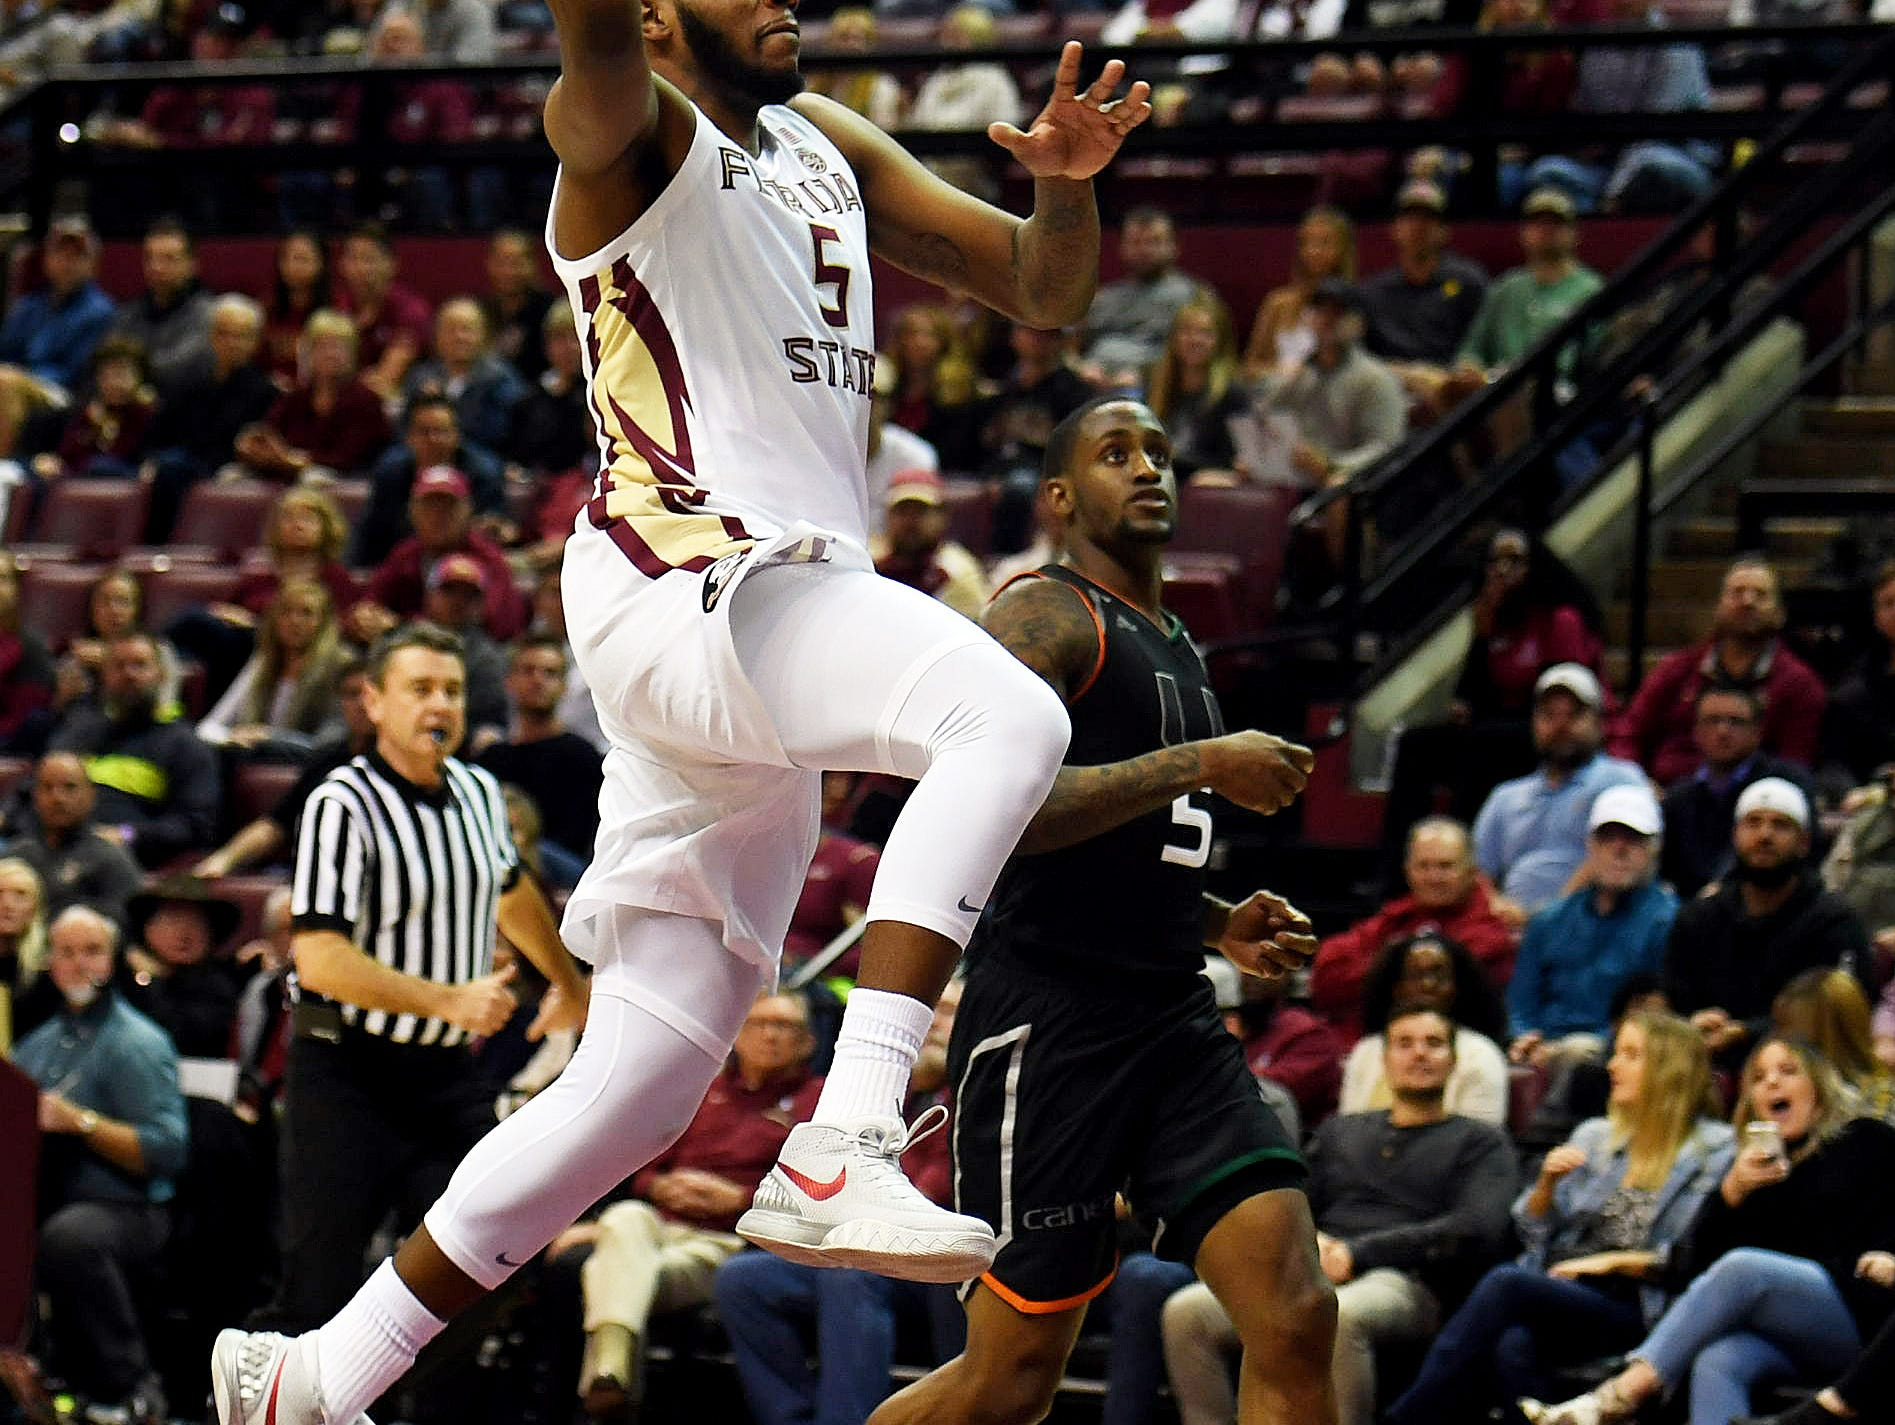 Jan 9, 2019; Tallahassee, FL, USA; Florida State Seminoles guard PJ Savoy (5) shoots the ball during the first half against the Miami Hurricanes at Donald L. Tucker Center. Mandatory Credit: Melina Myers-USA TODAY Sports